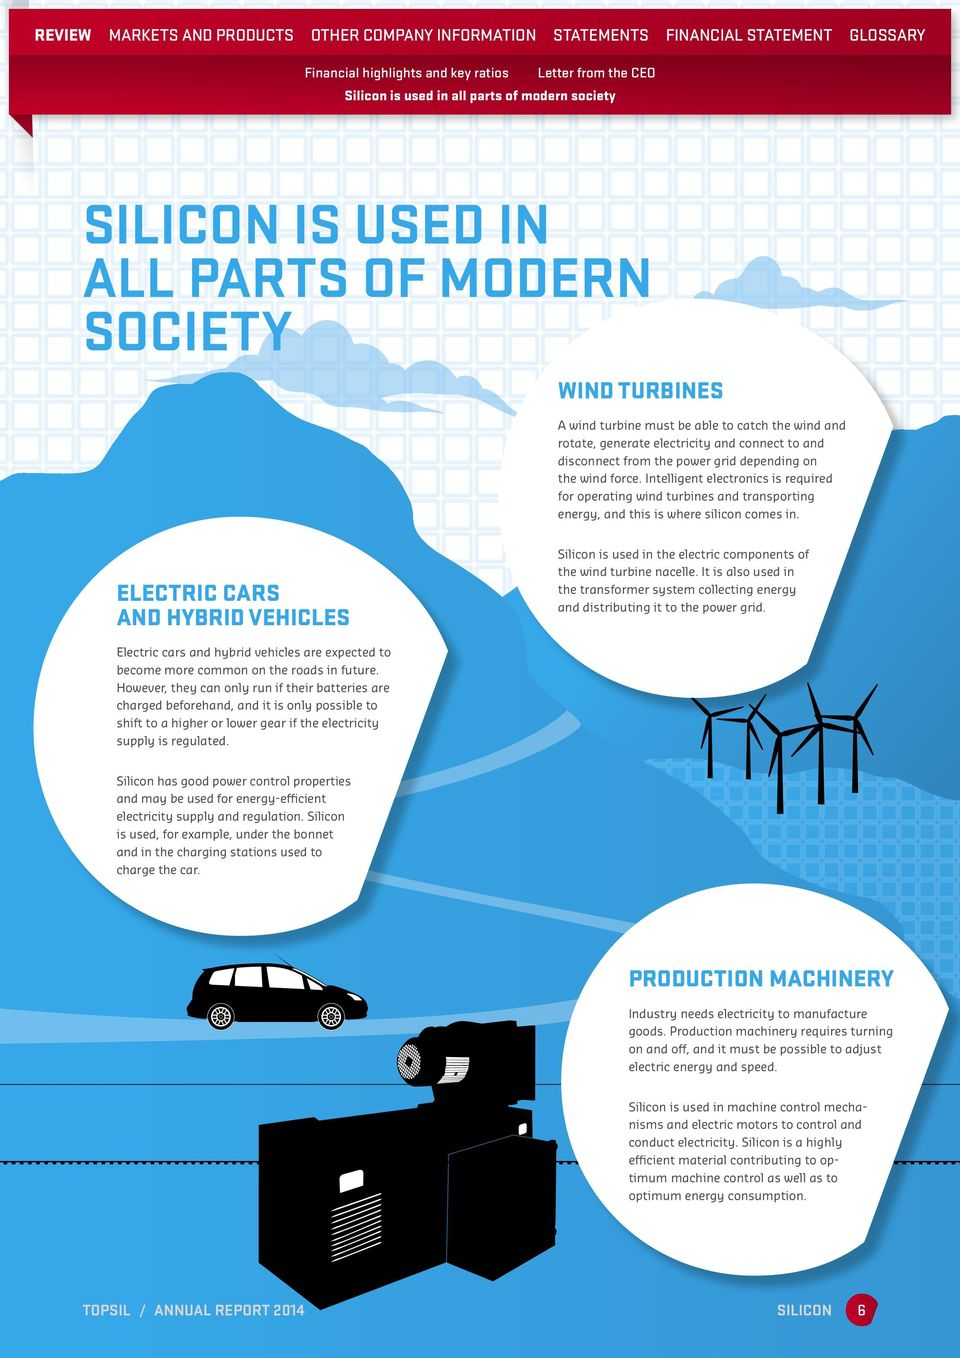 Intelligent electronics is required for operating wind turbines and transporting energy, and this is where silicon comes in.